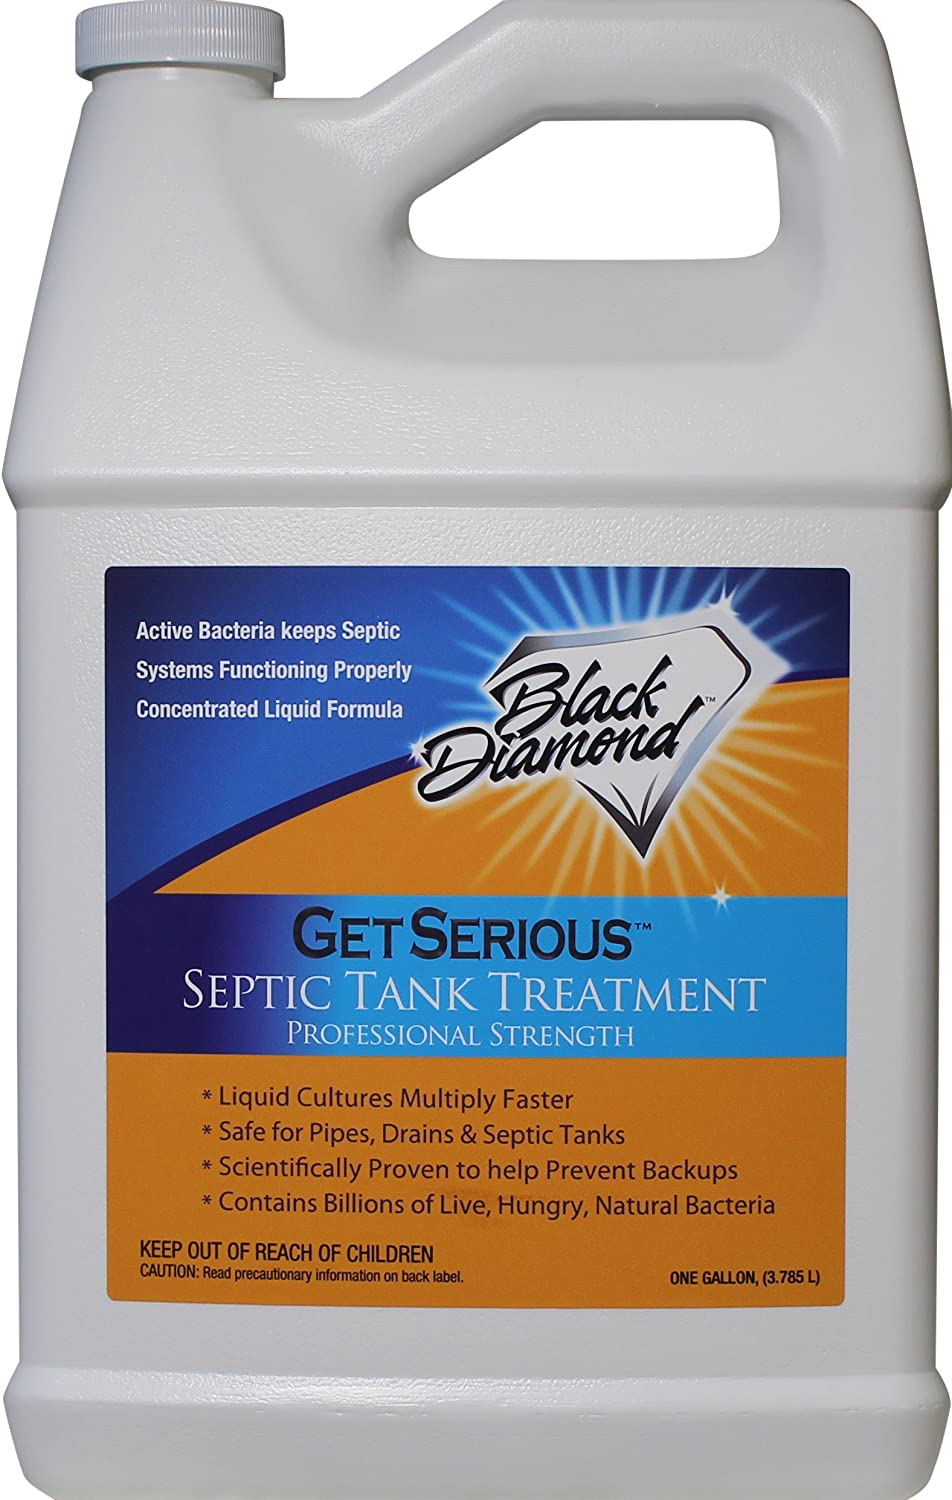 GET SERIOUS Septic Tank Treatment Liquid Natural Enzymes For Residential, Commercial, Industrial, RV's Systems (1-Gallon)